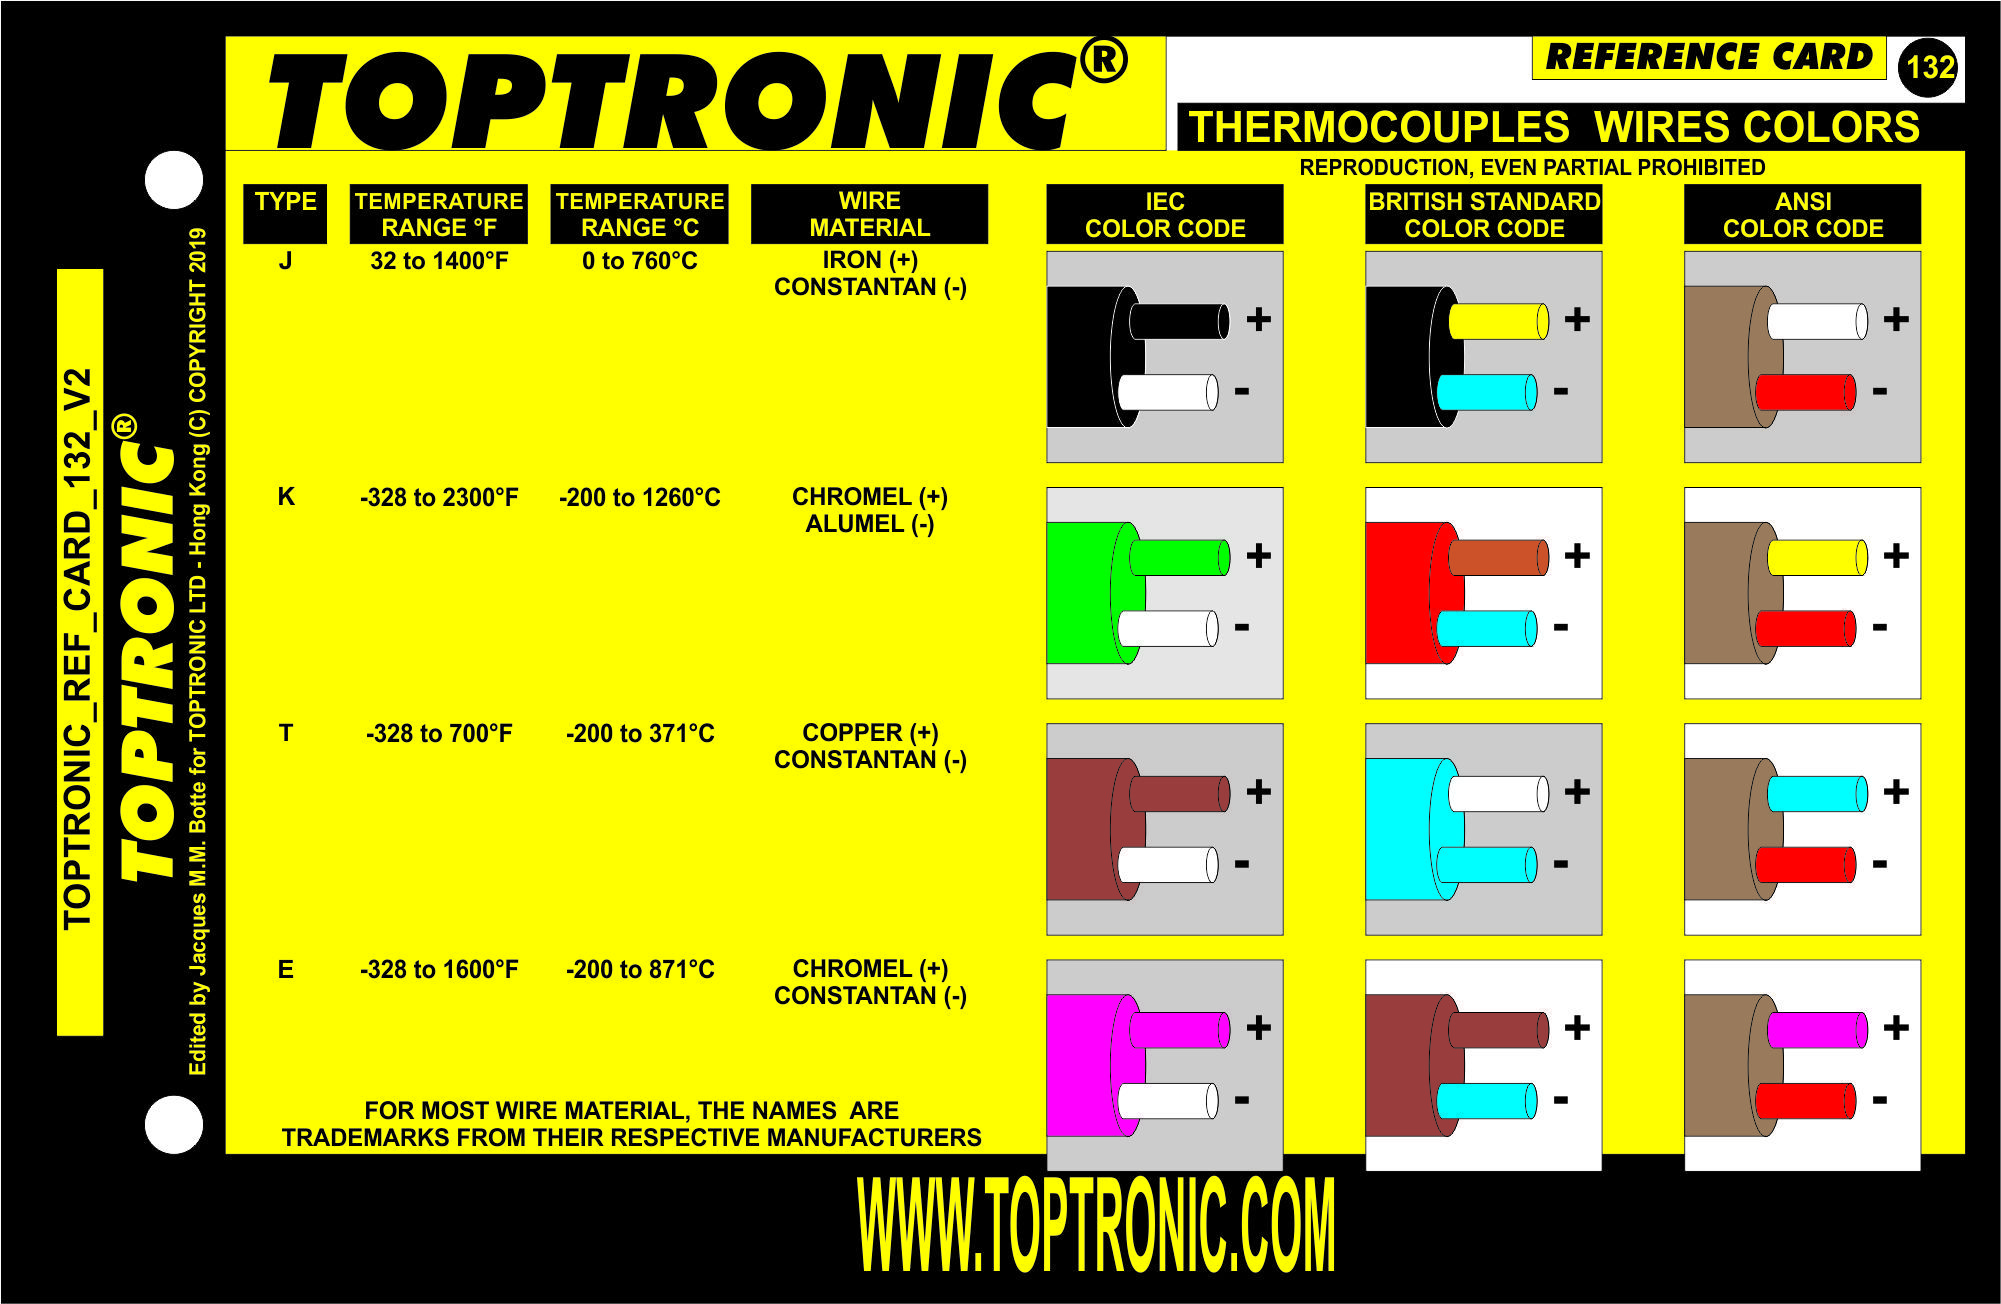 Pin on TOPTRONIC Thermocouple Wiring Colors on